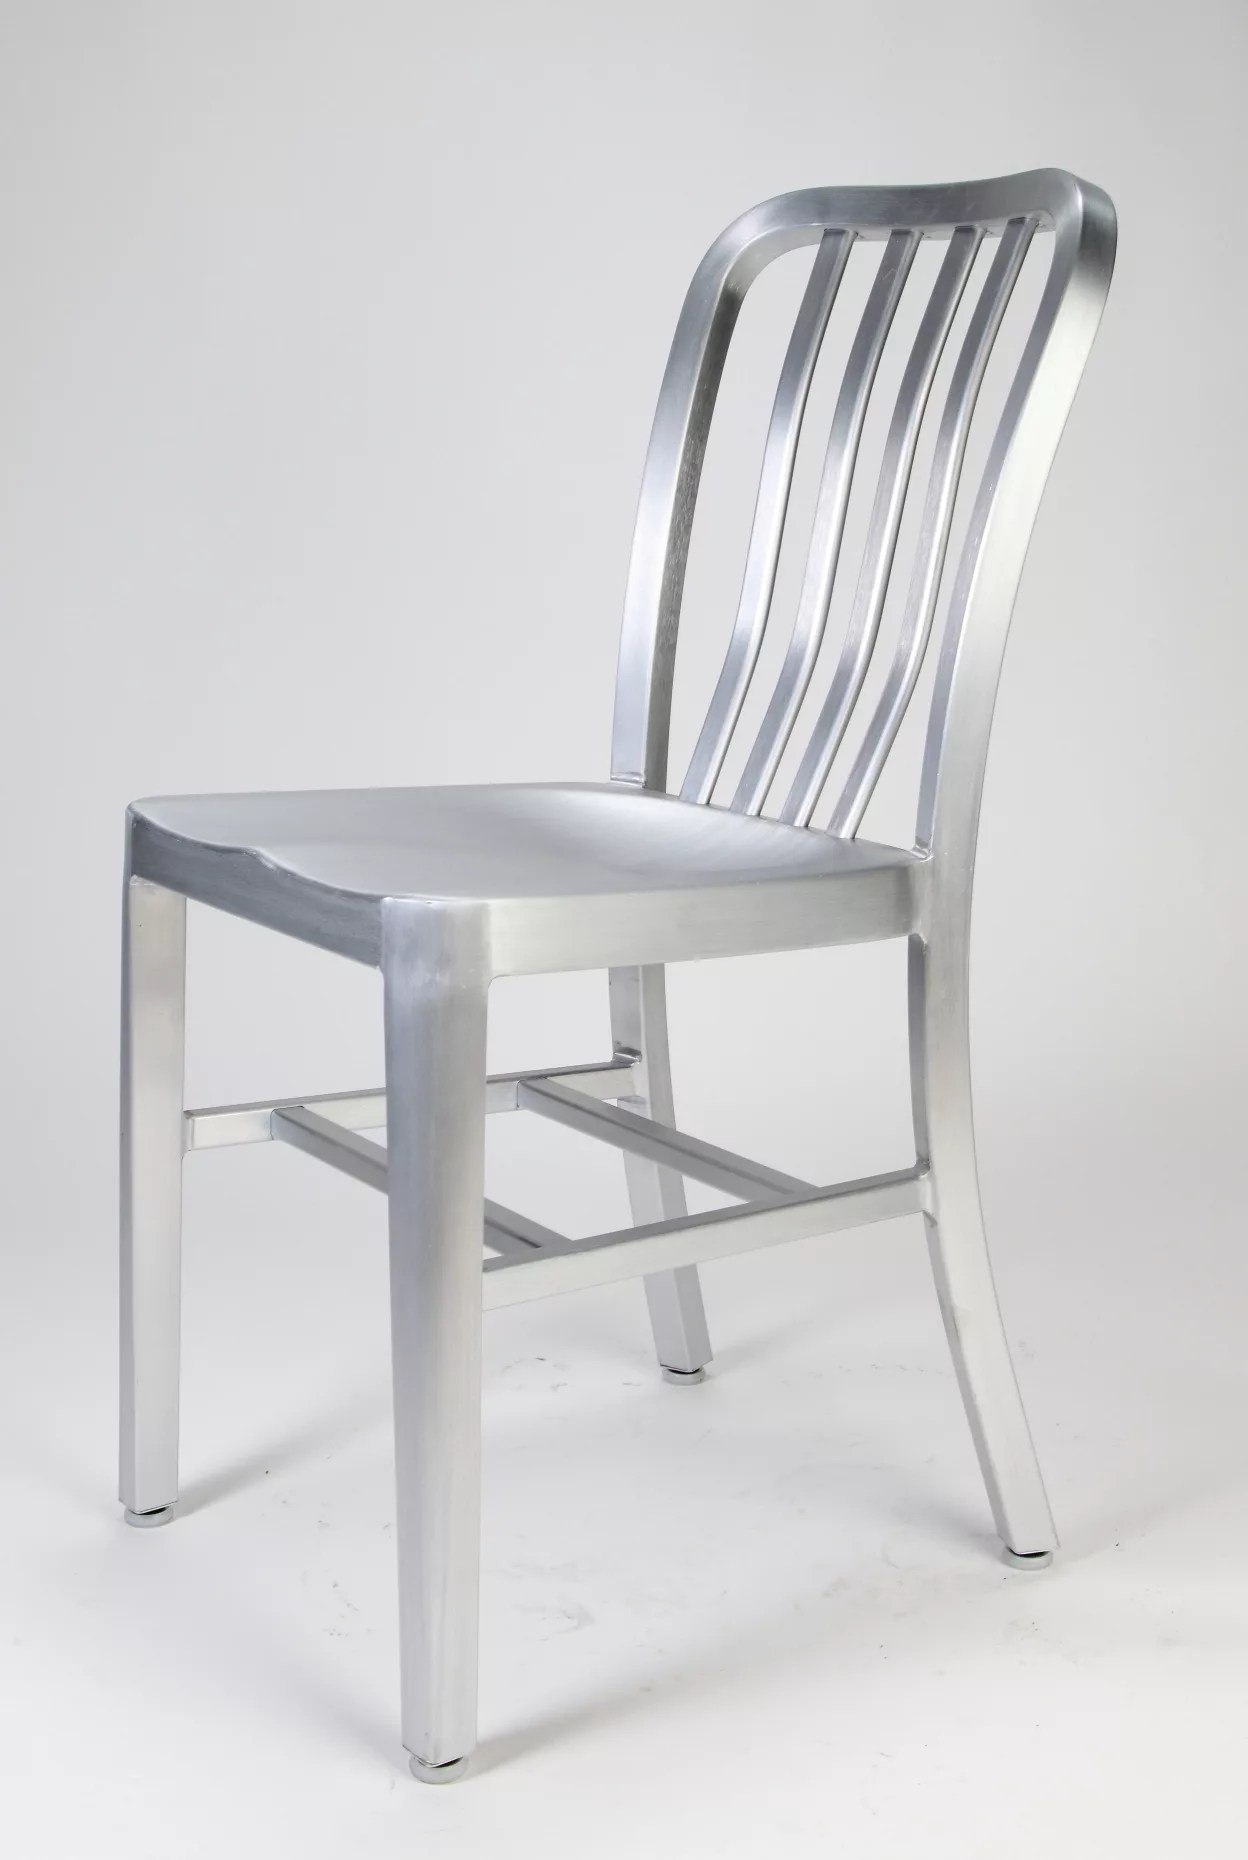 Attirant Home / Shop / Aluminum Dining Chairs / Brushed Aluminum Dining Chair